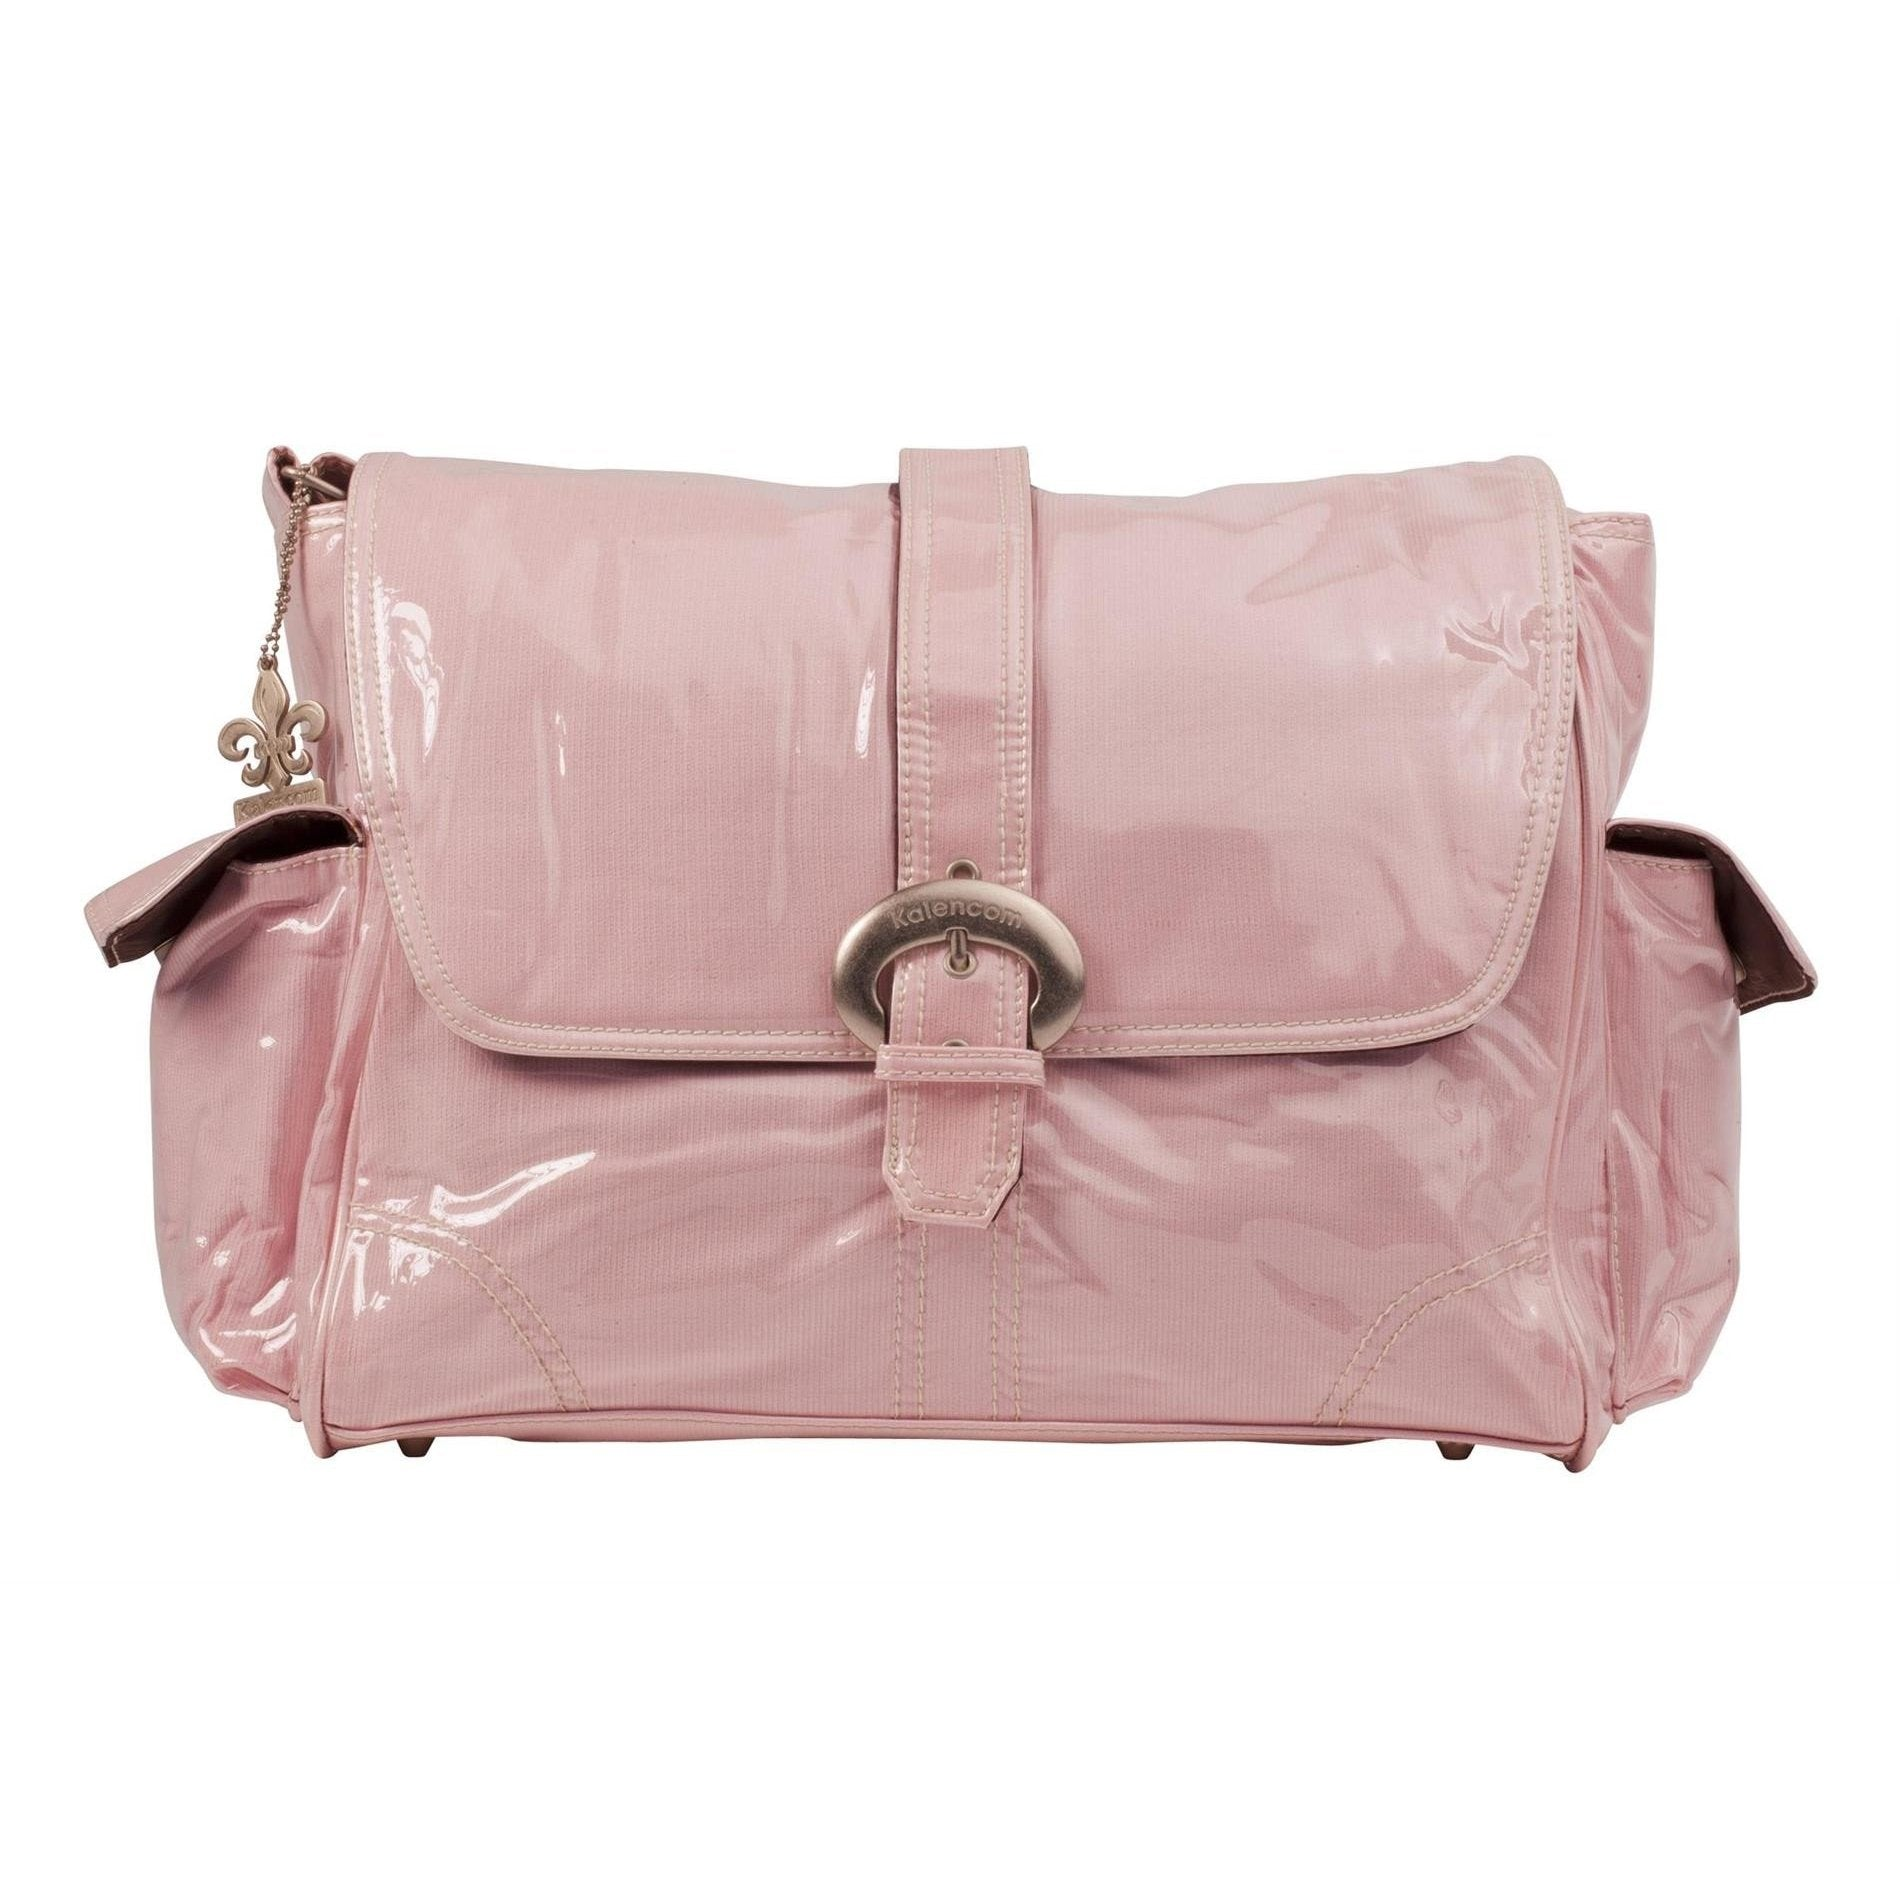 Baby Pink Corduroy Laminated Buckle Diaper Bag | Style 2960 - Kalencom-Diaper Bags-Jack and Jill Boutique